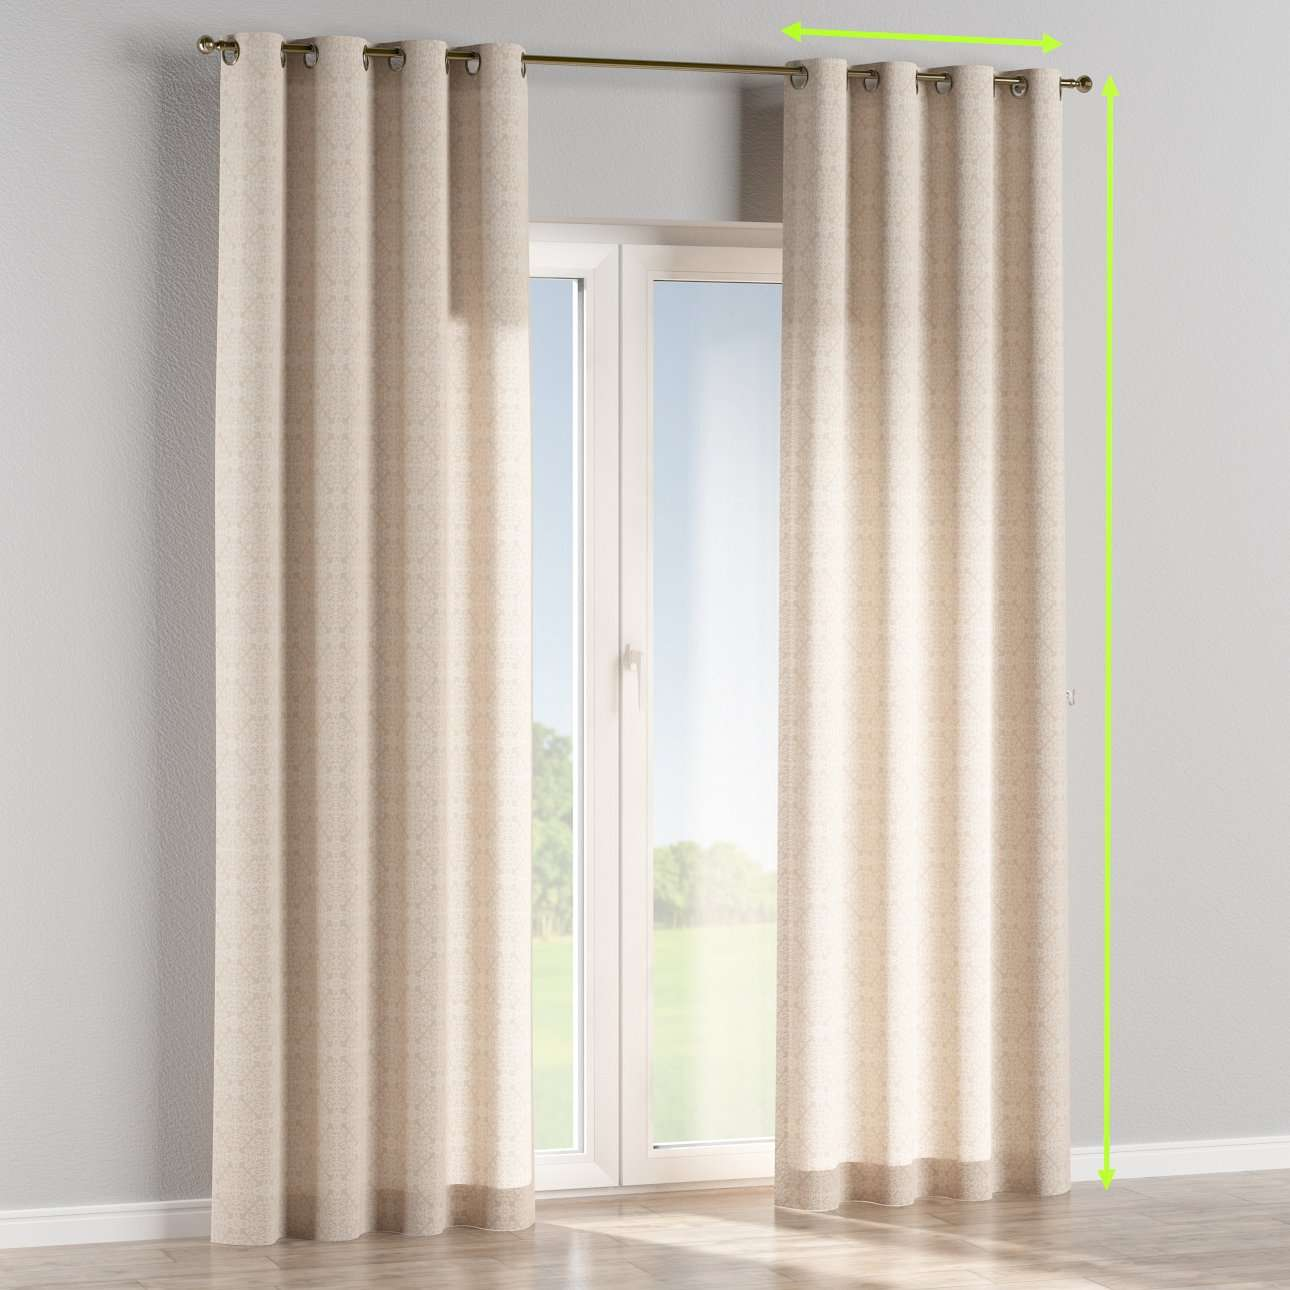 Eyelet lined curtains in collection Flowers, fabric: 140-39